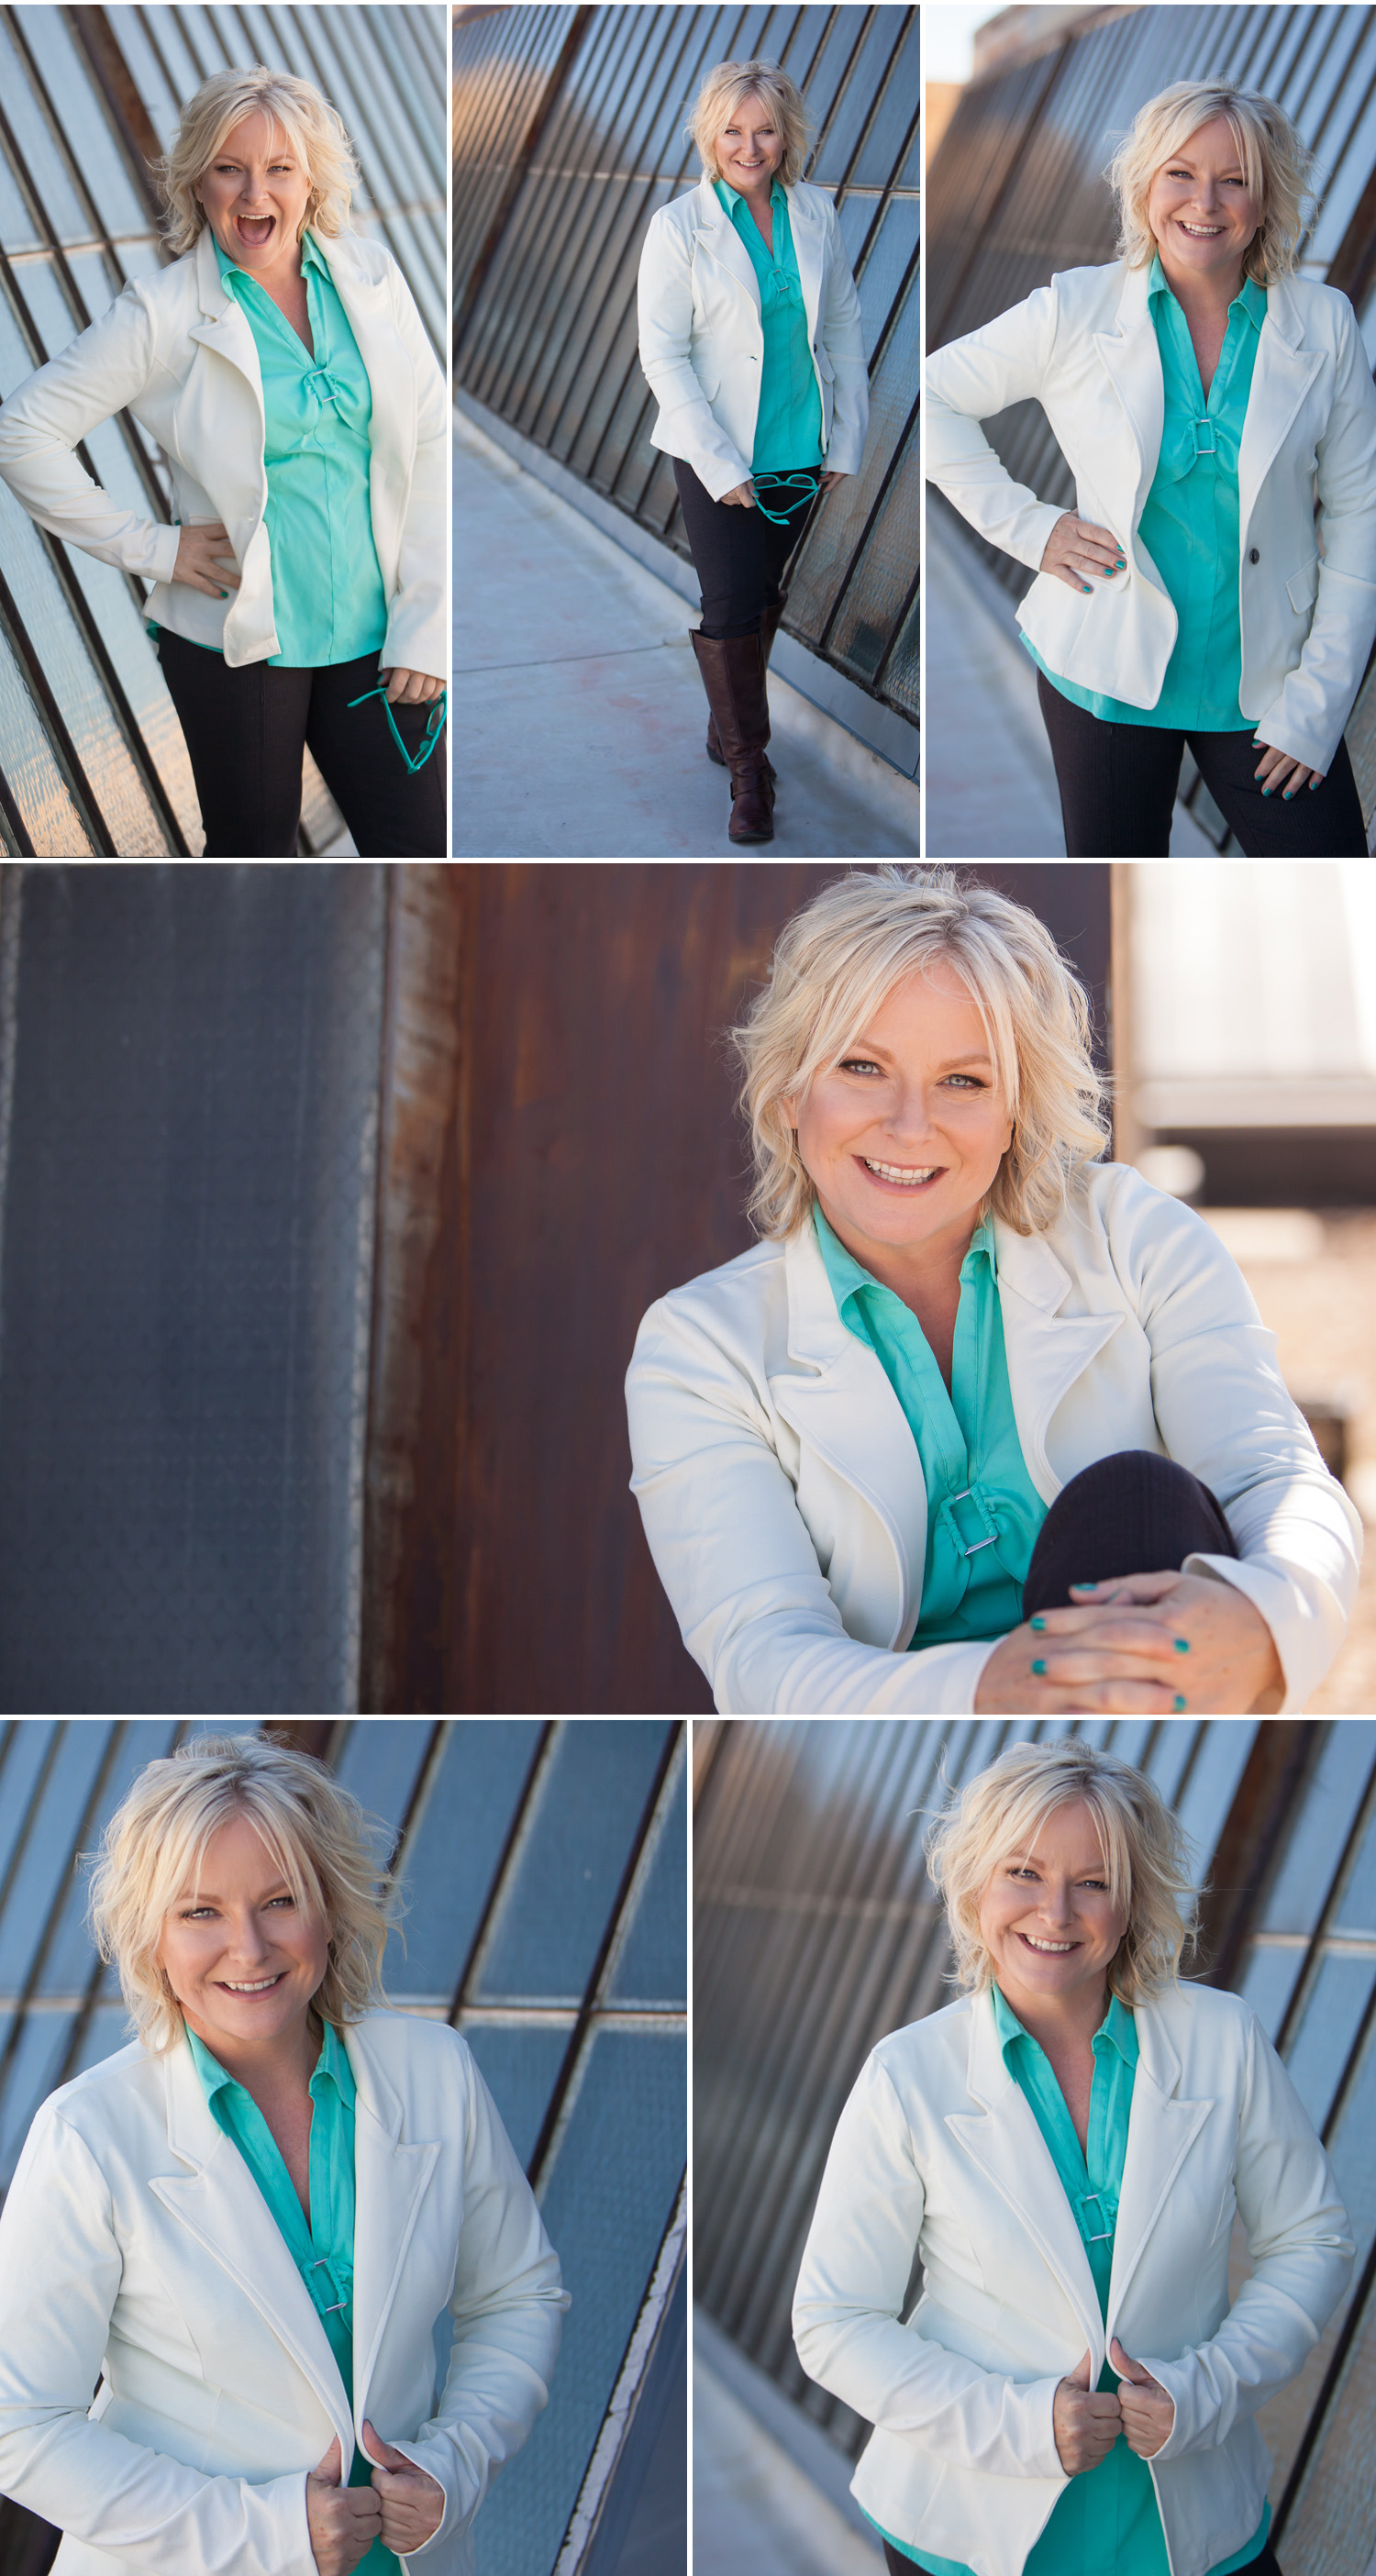 Beautiful blond woman's personal branding portrait session with Denver photographer Jennifer Koskinen | Merritt Design Photo